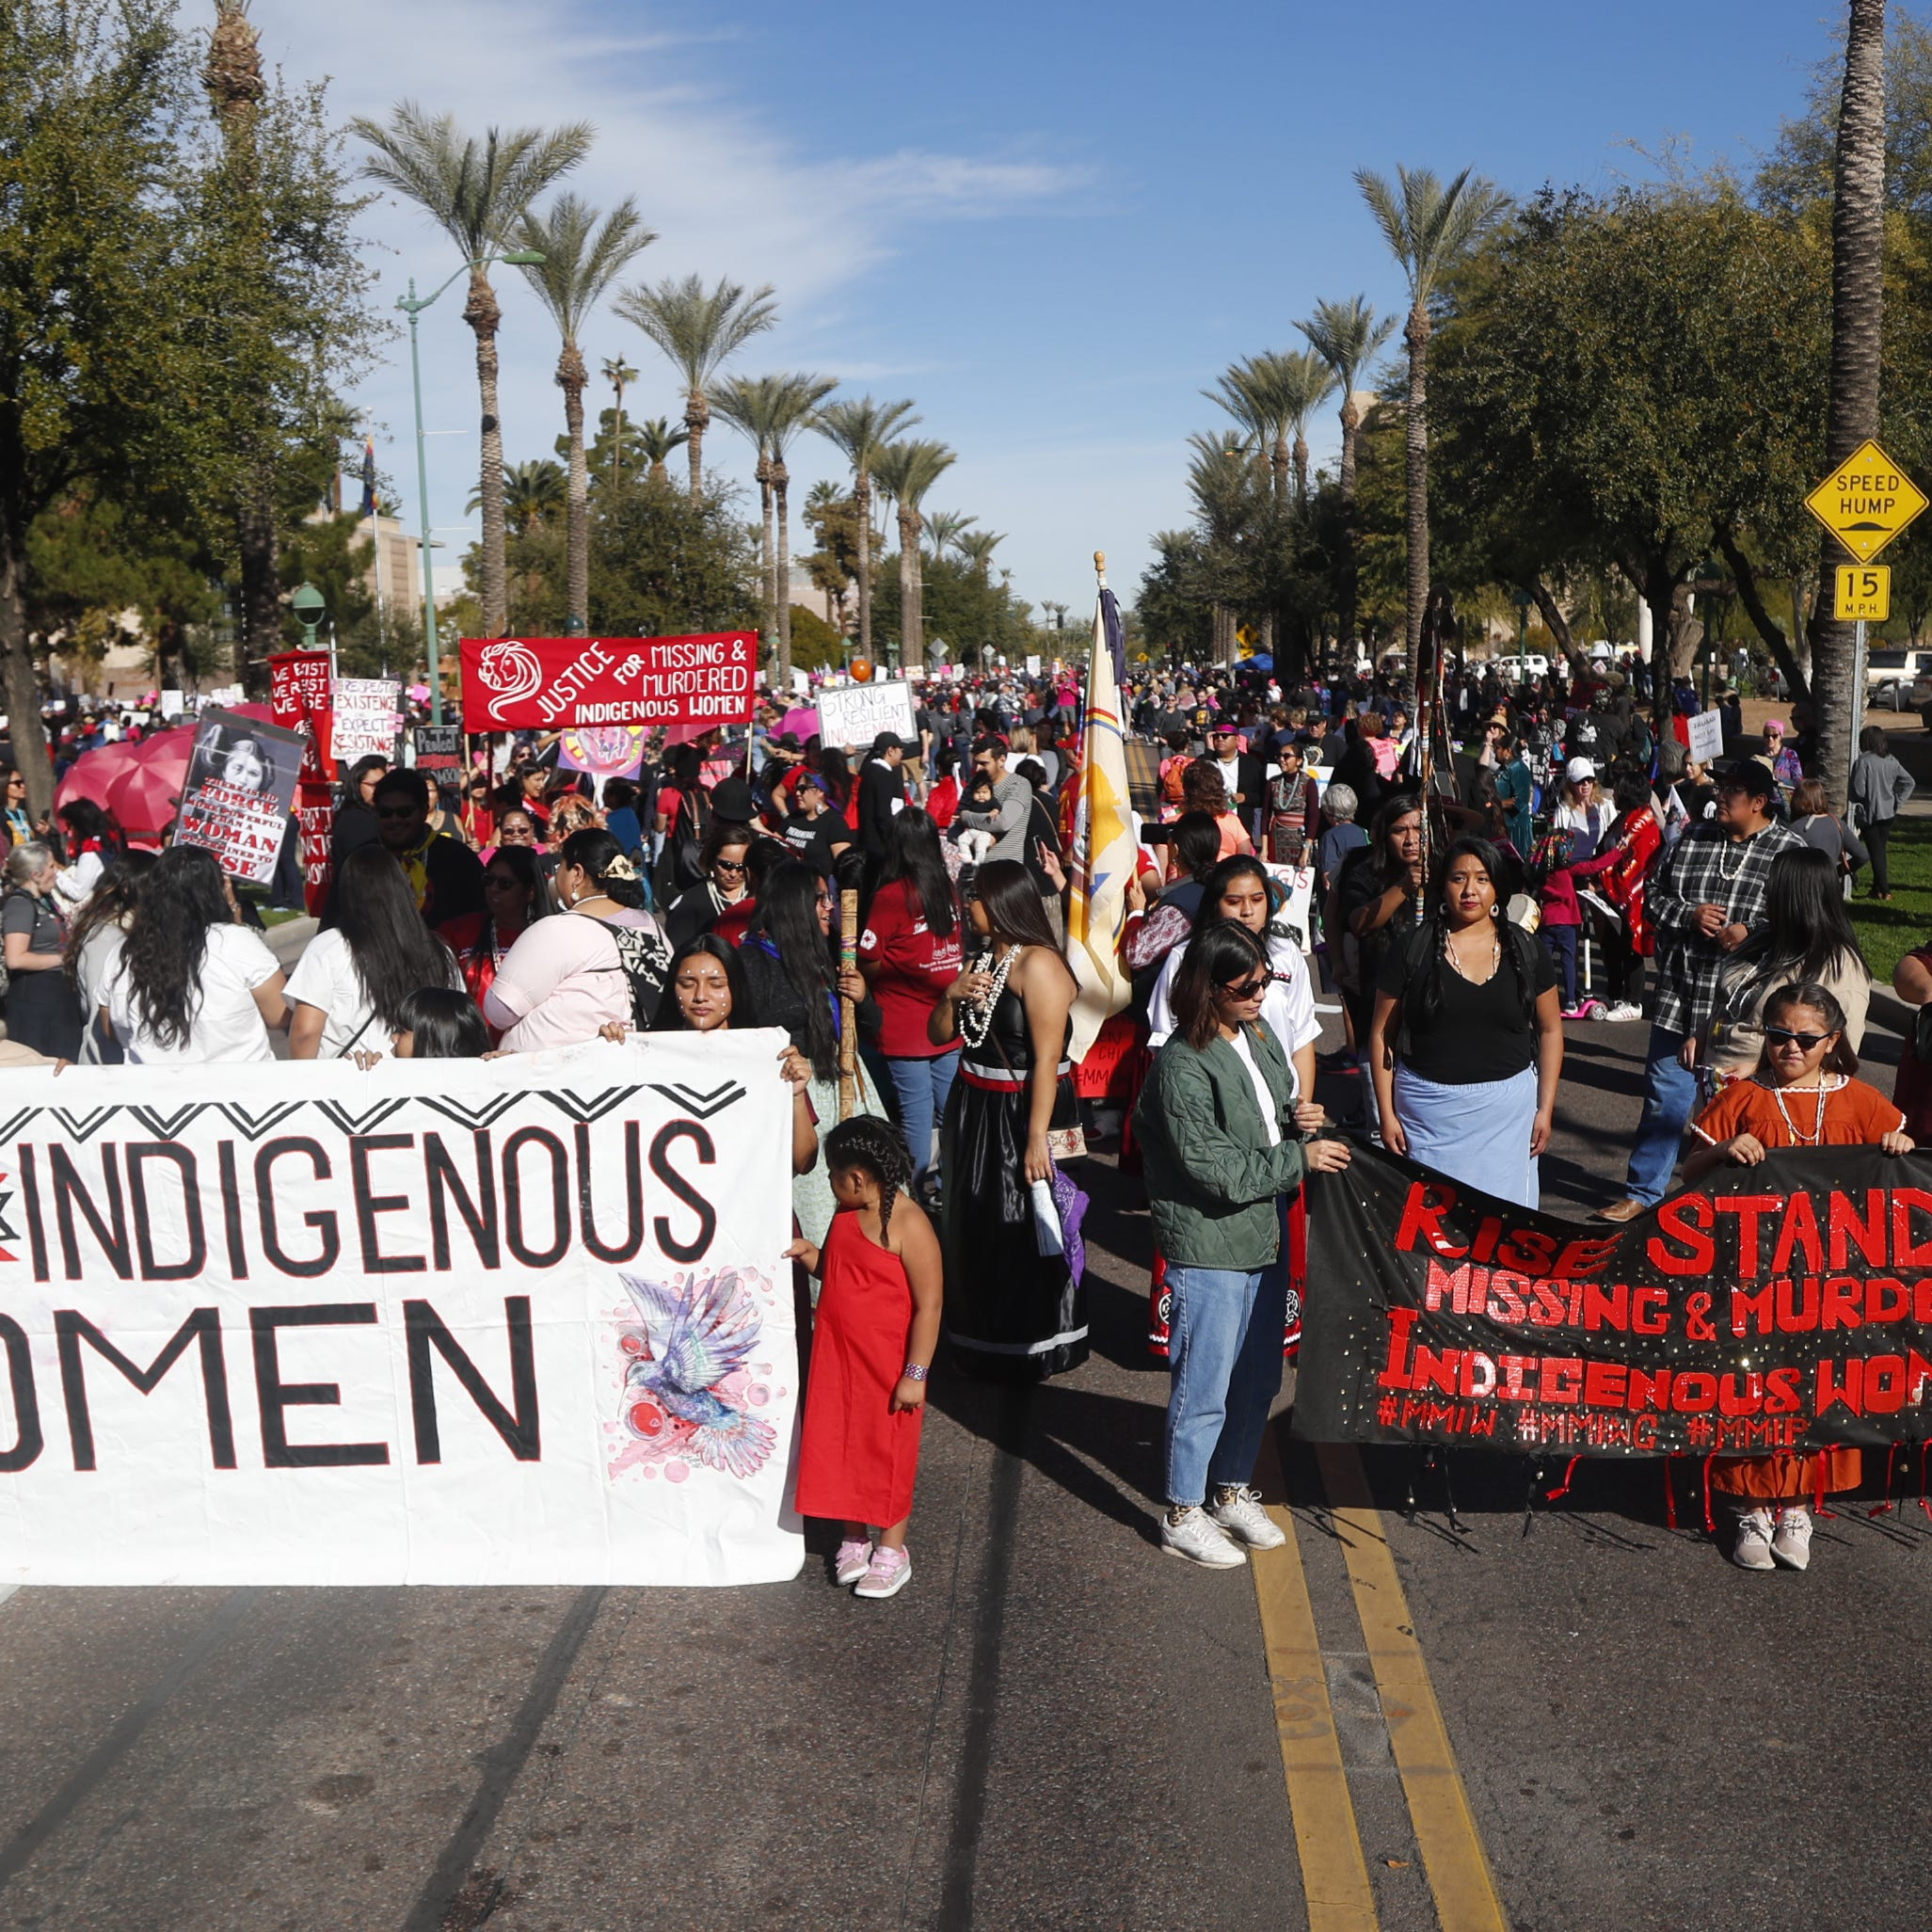 6,700 attended the Women's March in downtown Phoenix